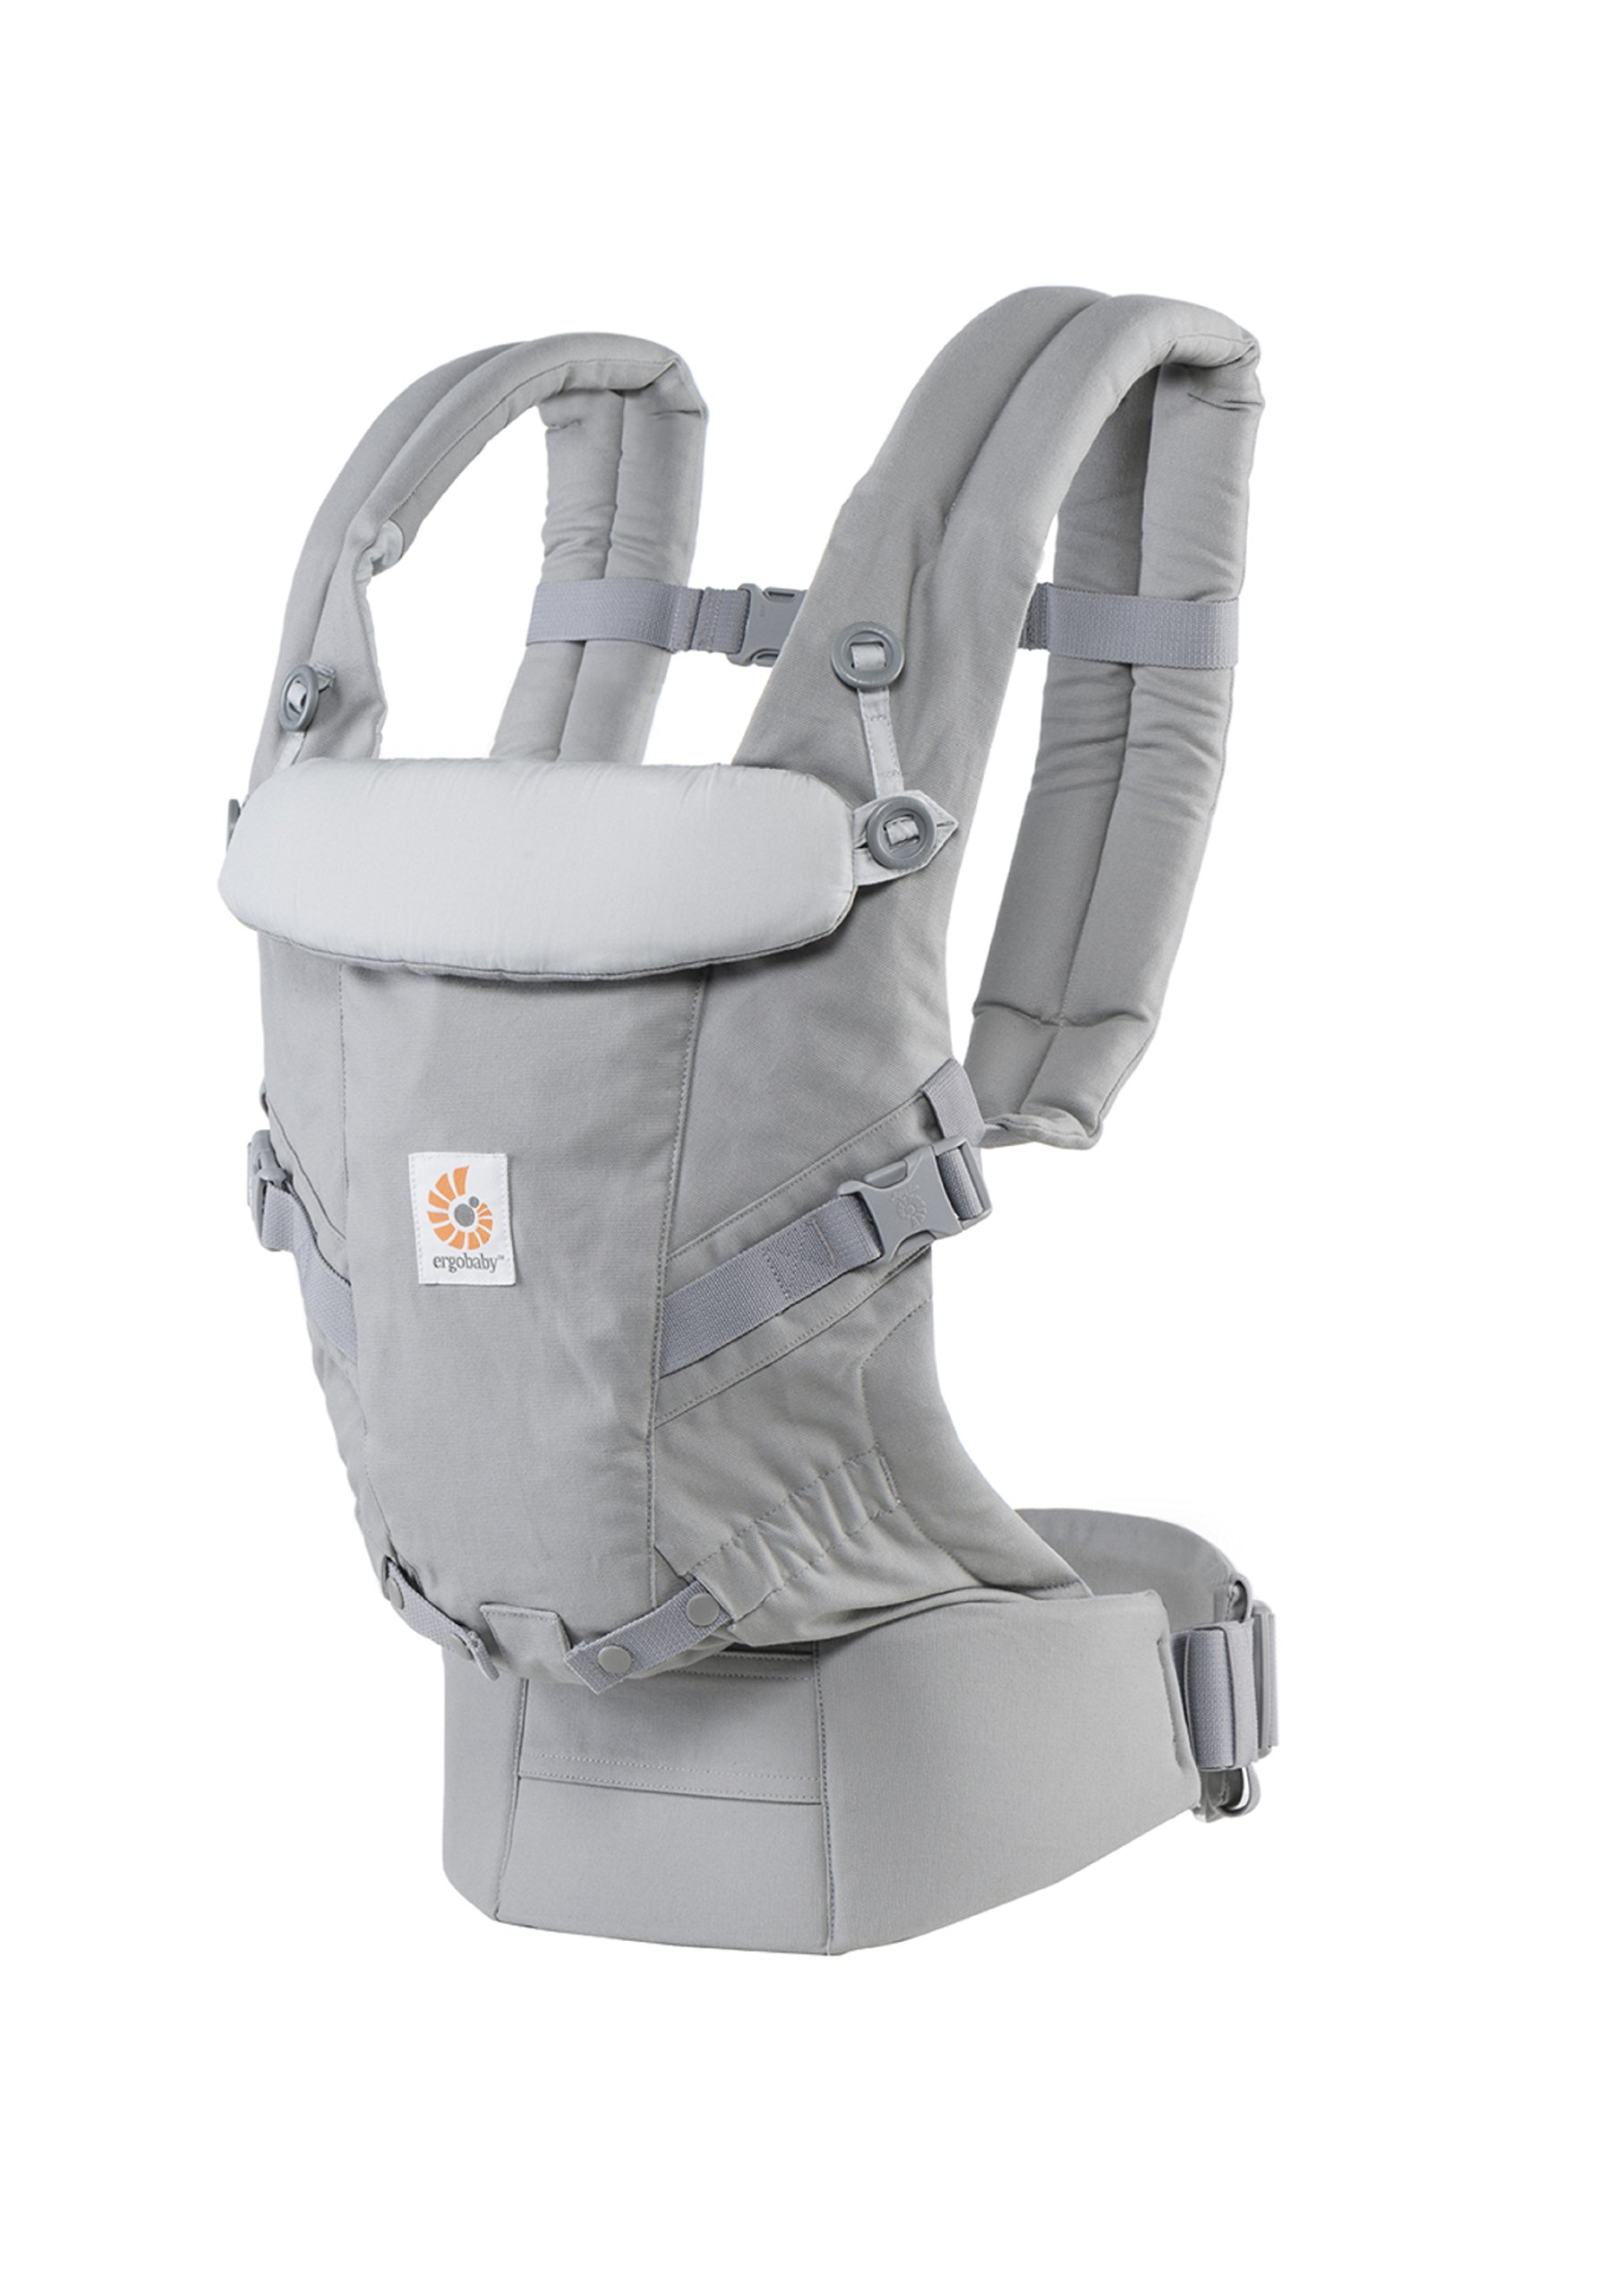 ErgoBaby Adapt Baby Carrier Grey Ergobaby Adapt to Every Baby Easy. Adjustable. Newborn to toddler. 5